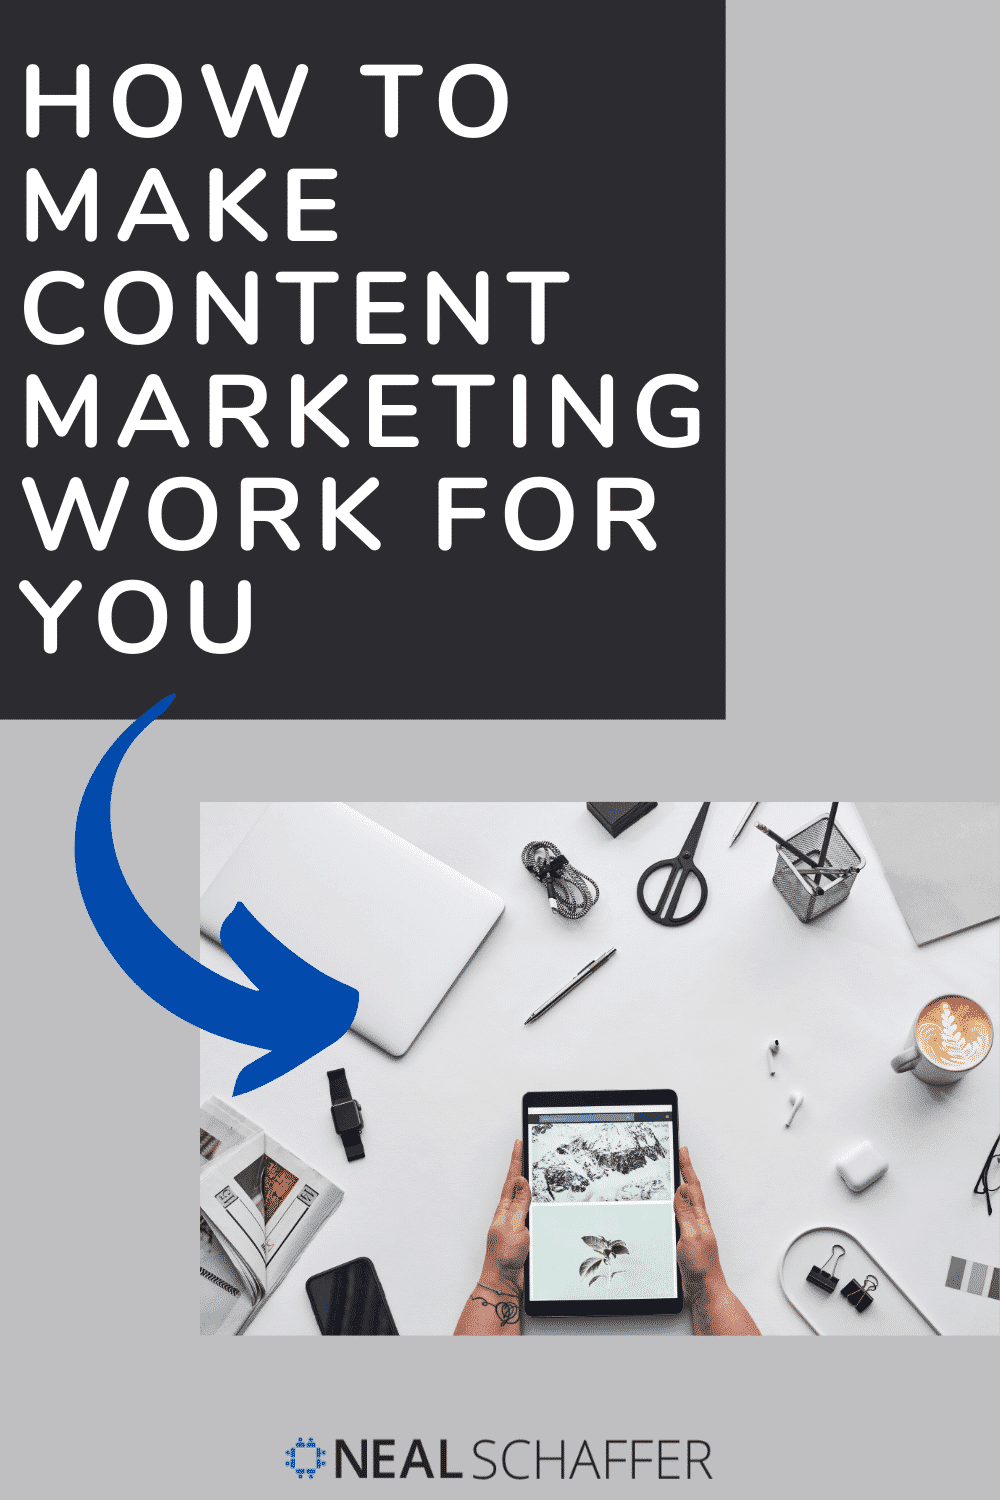 Ready to stop making content marketing just another piece work? Let's turn that around and make content marketing work for you instead!